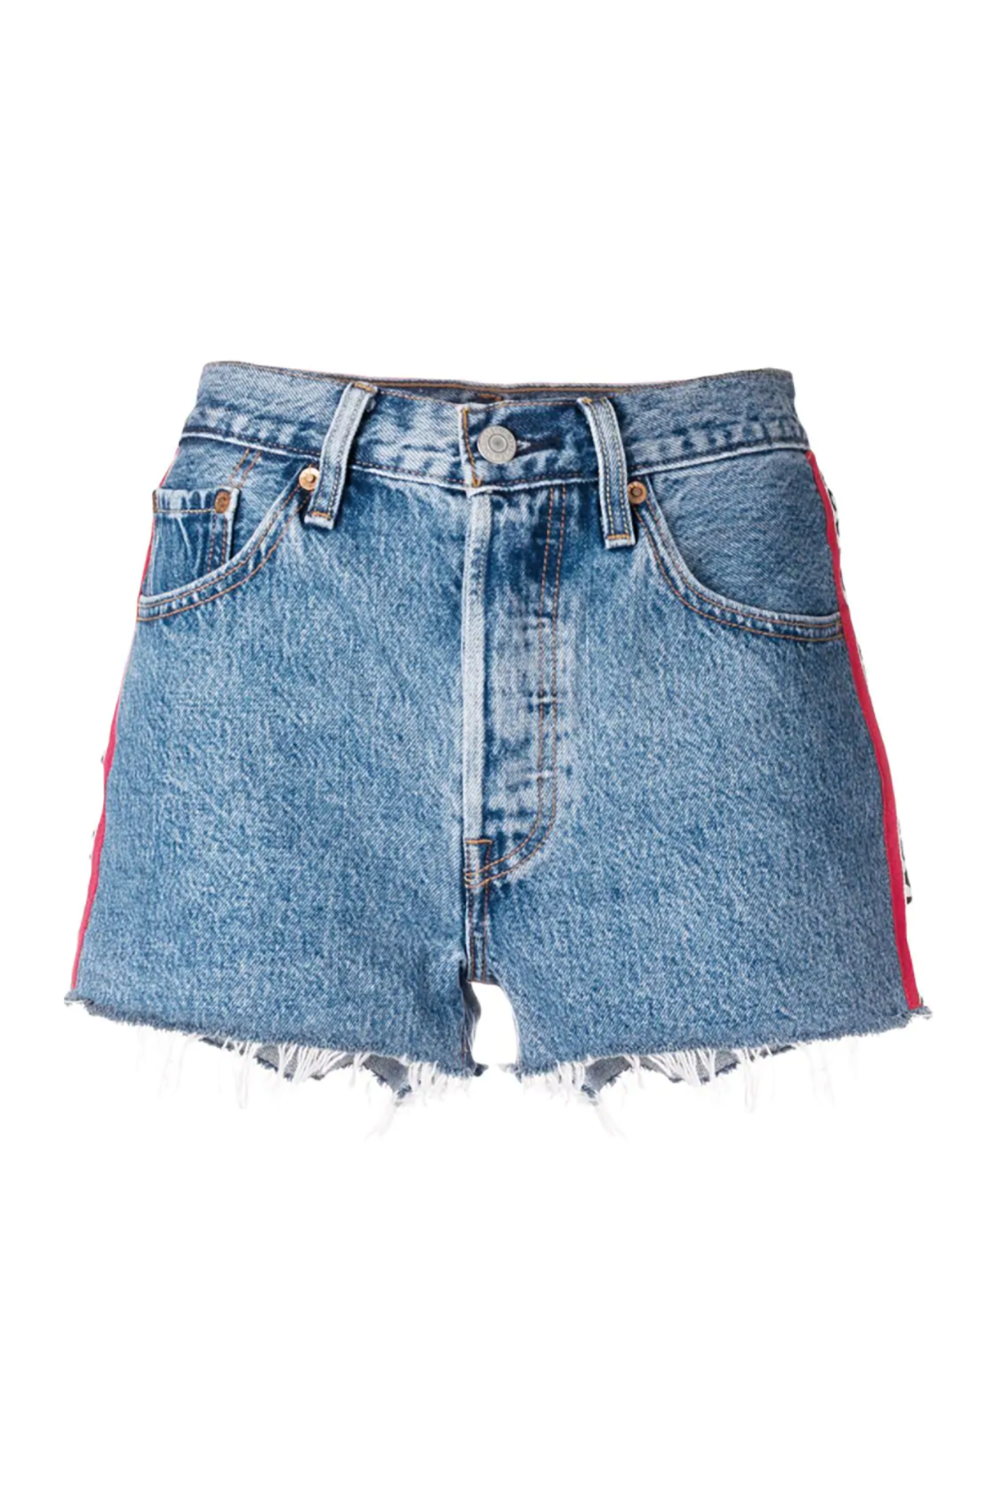 f9c378e444 12 Best Denim Shorts of 2019 for Women - Distressed, High Waisted, and More